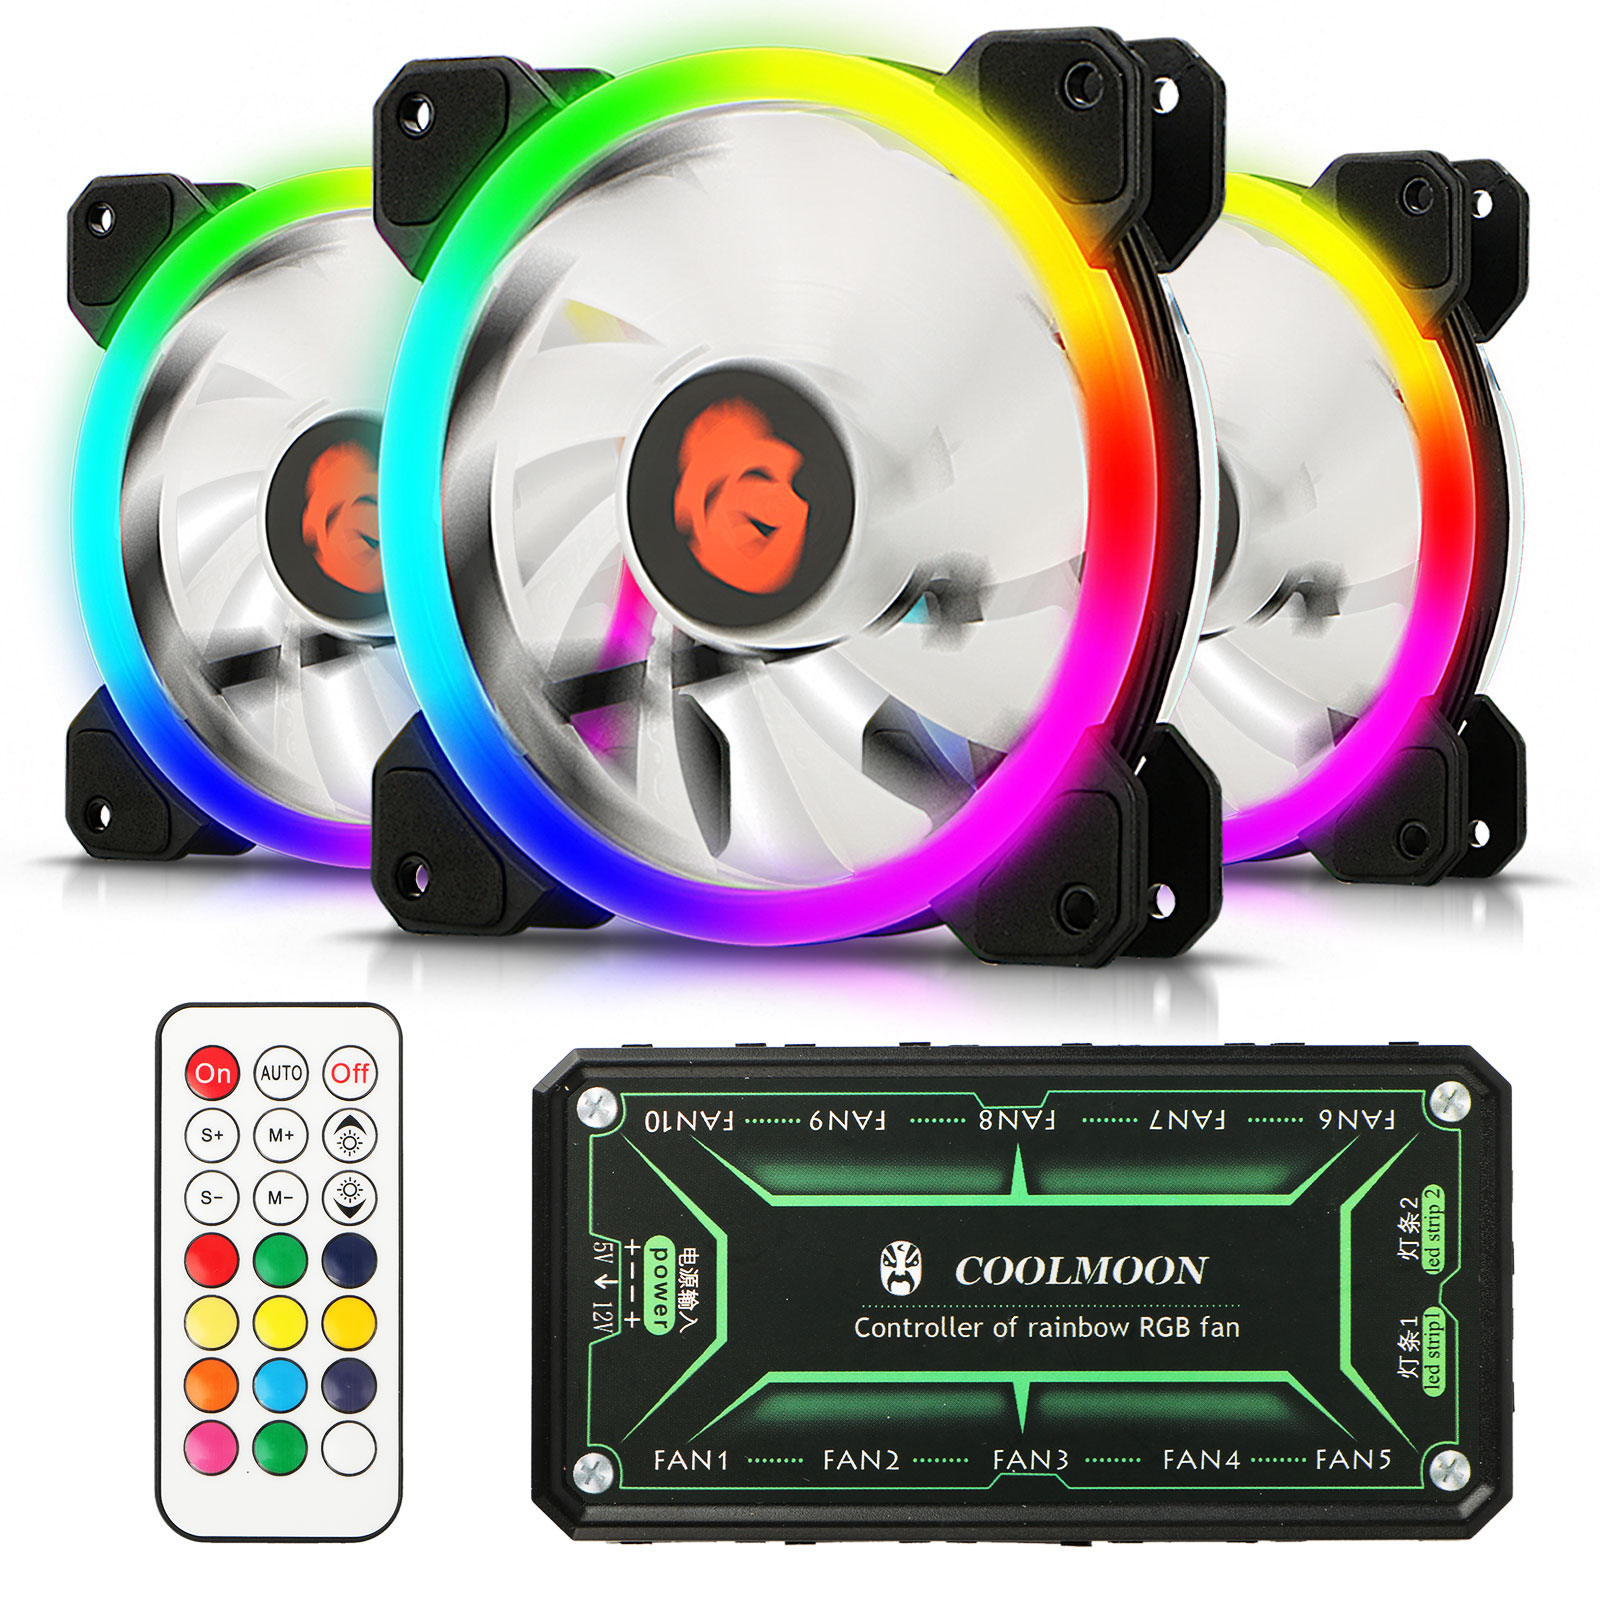 TSV 3-Pack 120mm RGB Fans - Wireless High Performance Dual-Loop Light LED Cooling Case Fan with Remote Controller for Gaming PC Computer CPU Cooler